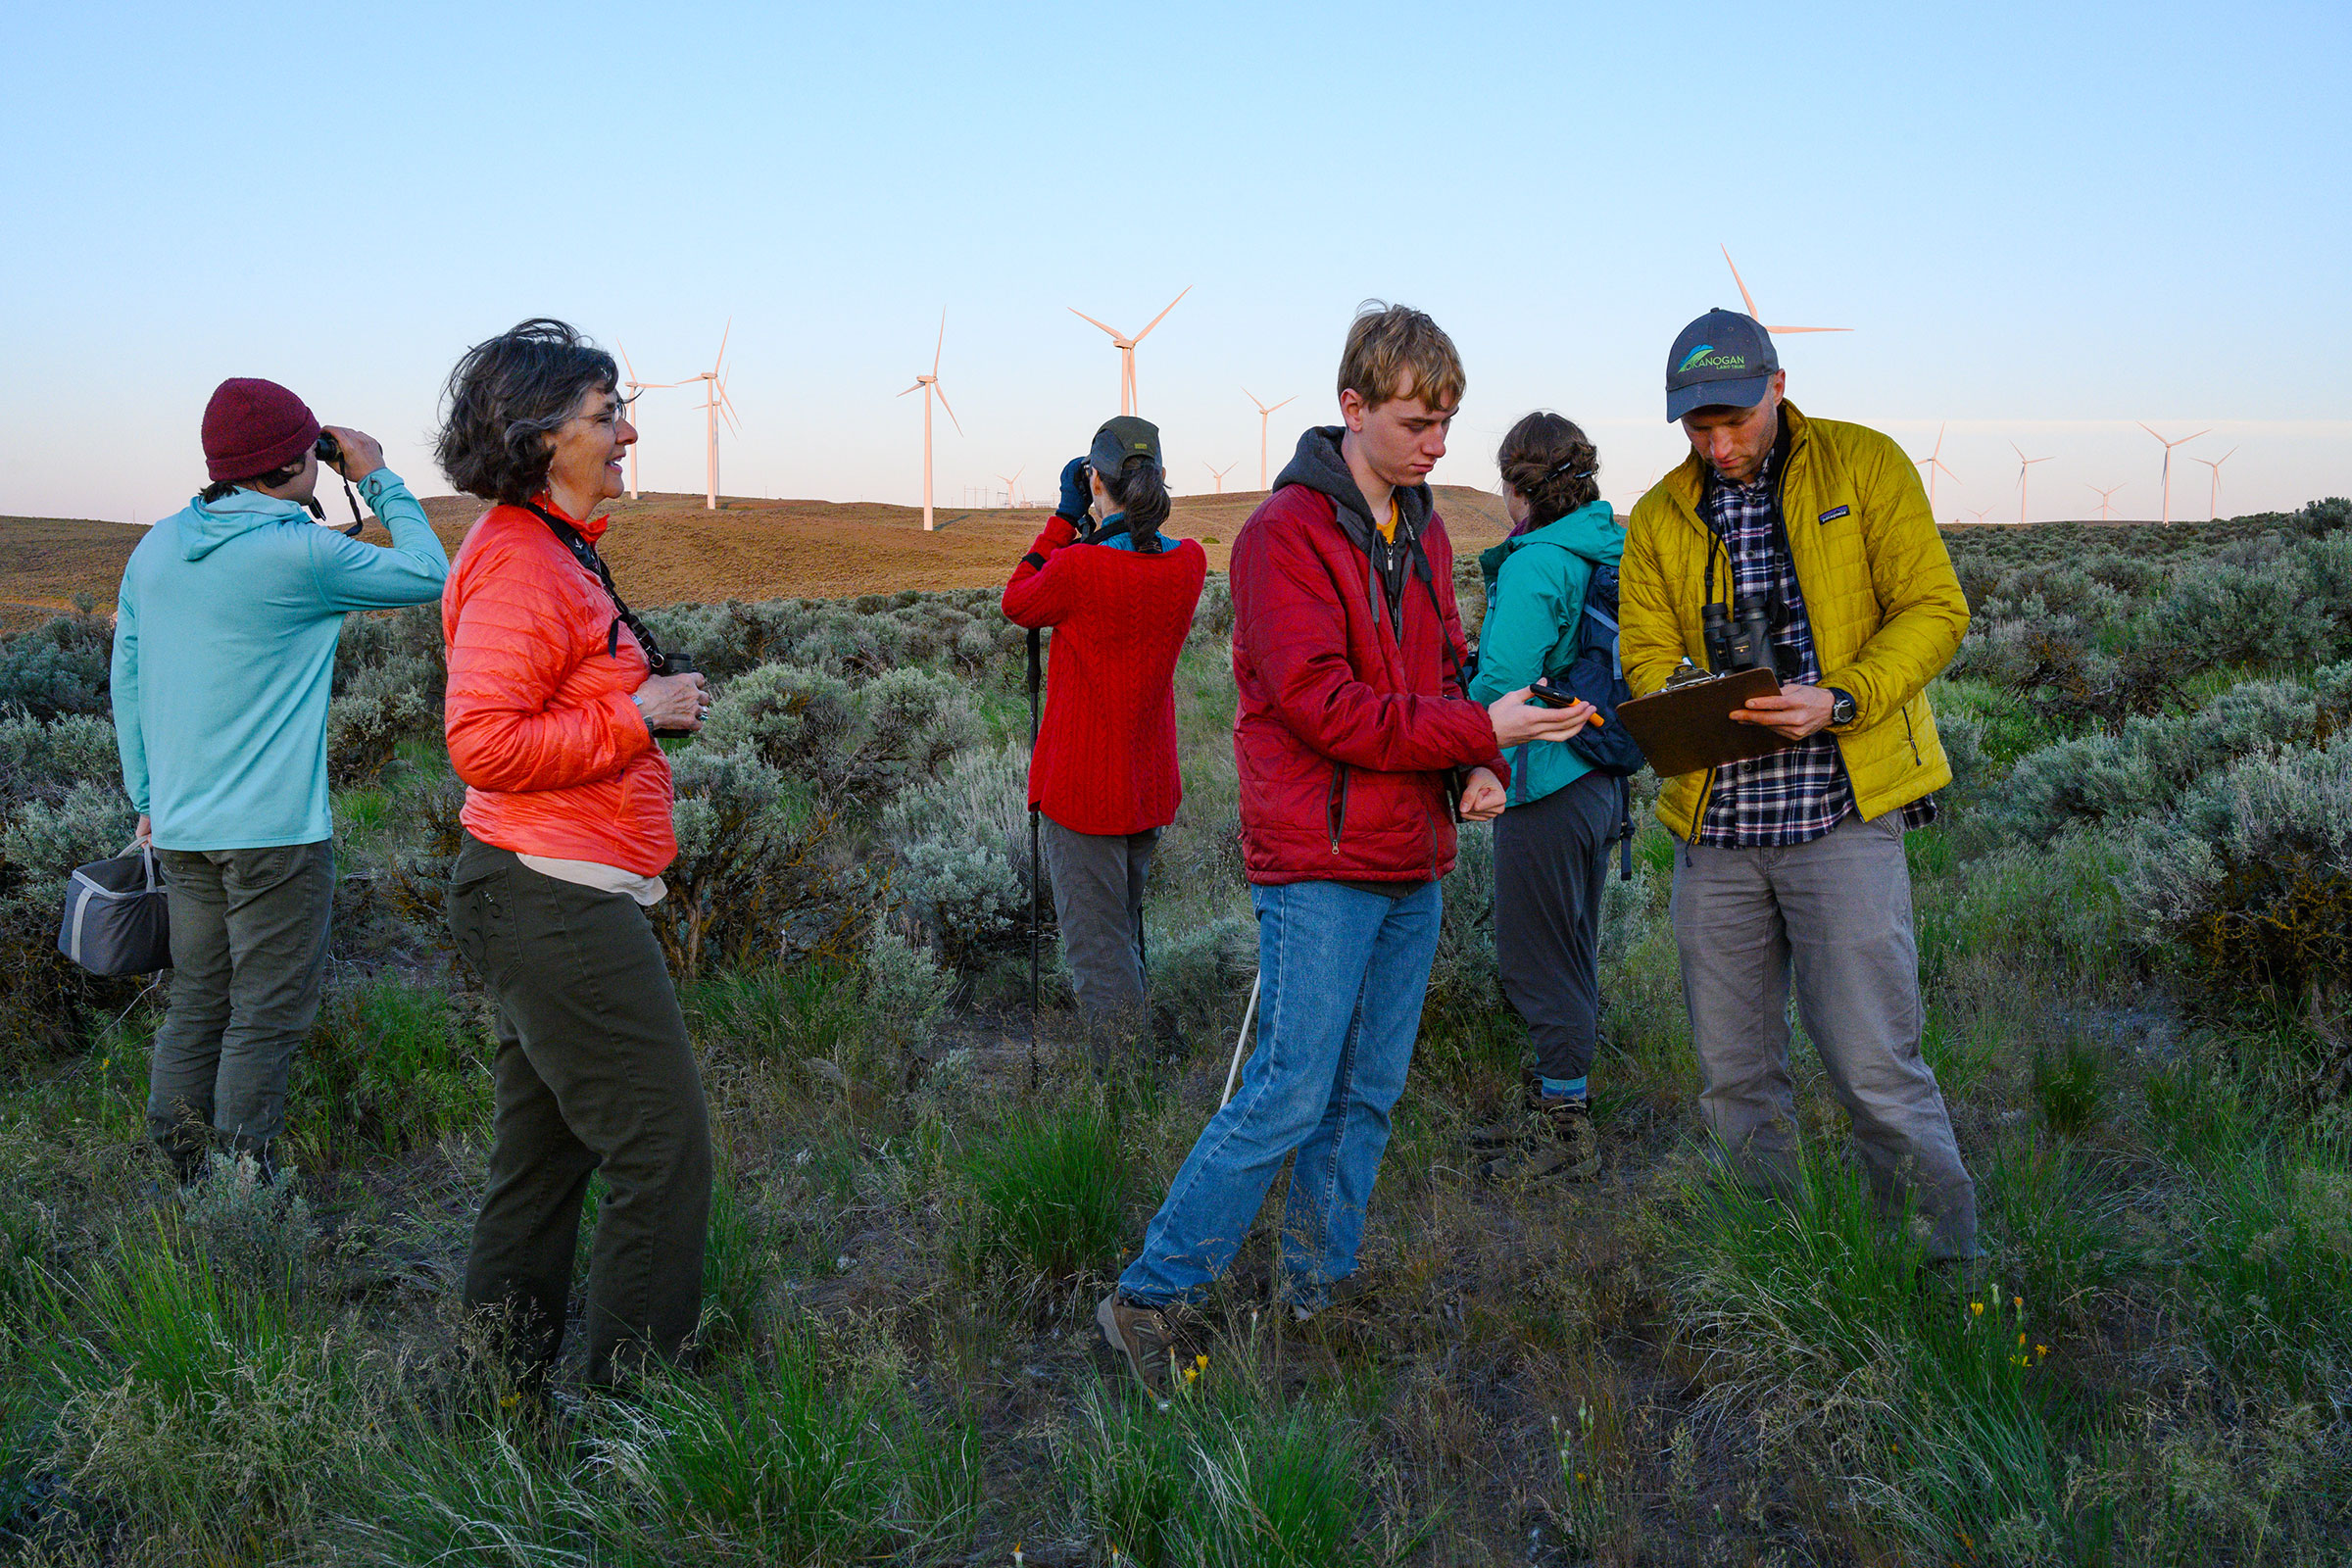 A Sagebrush Songbird Survey group hits the Wild Horse Wind and Solar Facility in Kittitas County, Washington, at first light. In front, Christi Norman observes as volunteers Curtis Mahon and John Rohrback record data. Dave Showalter